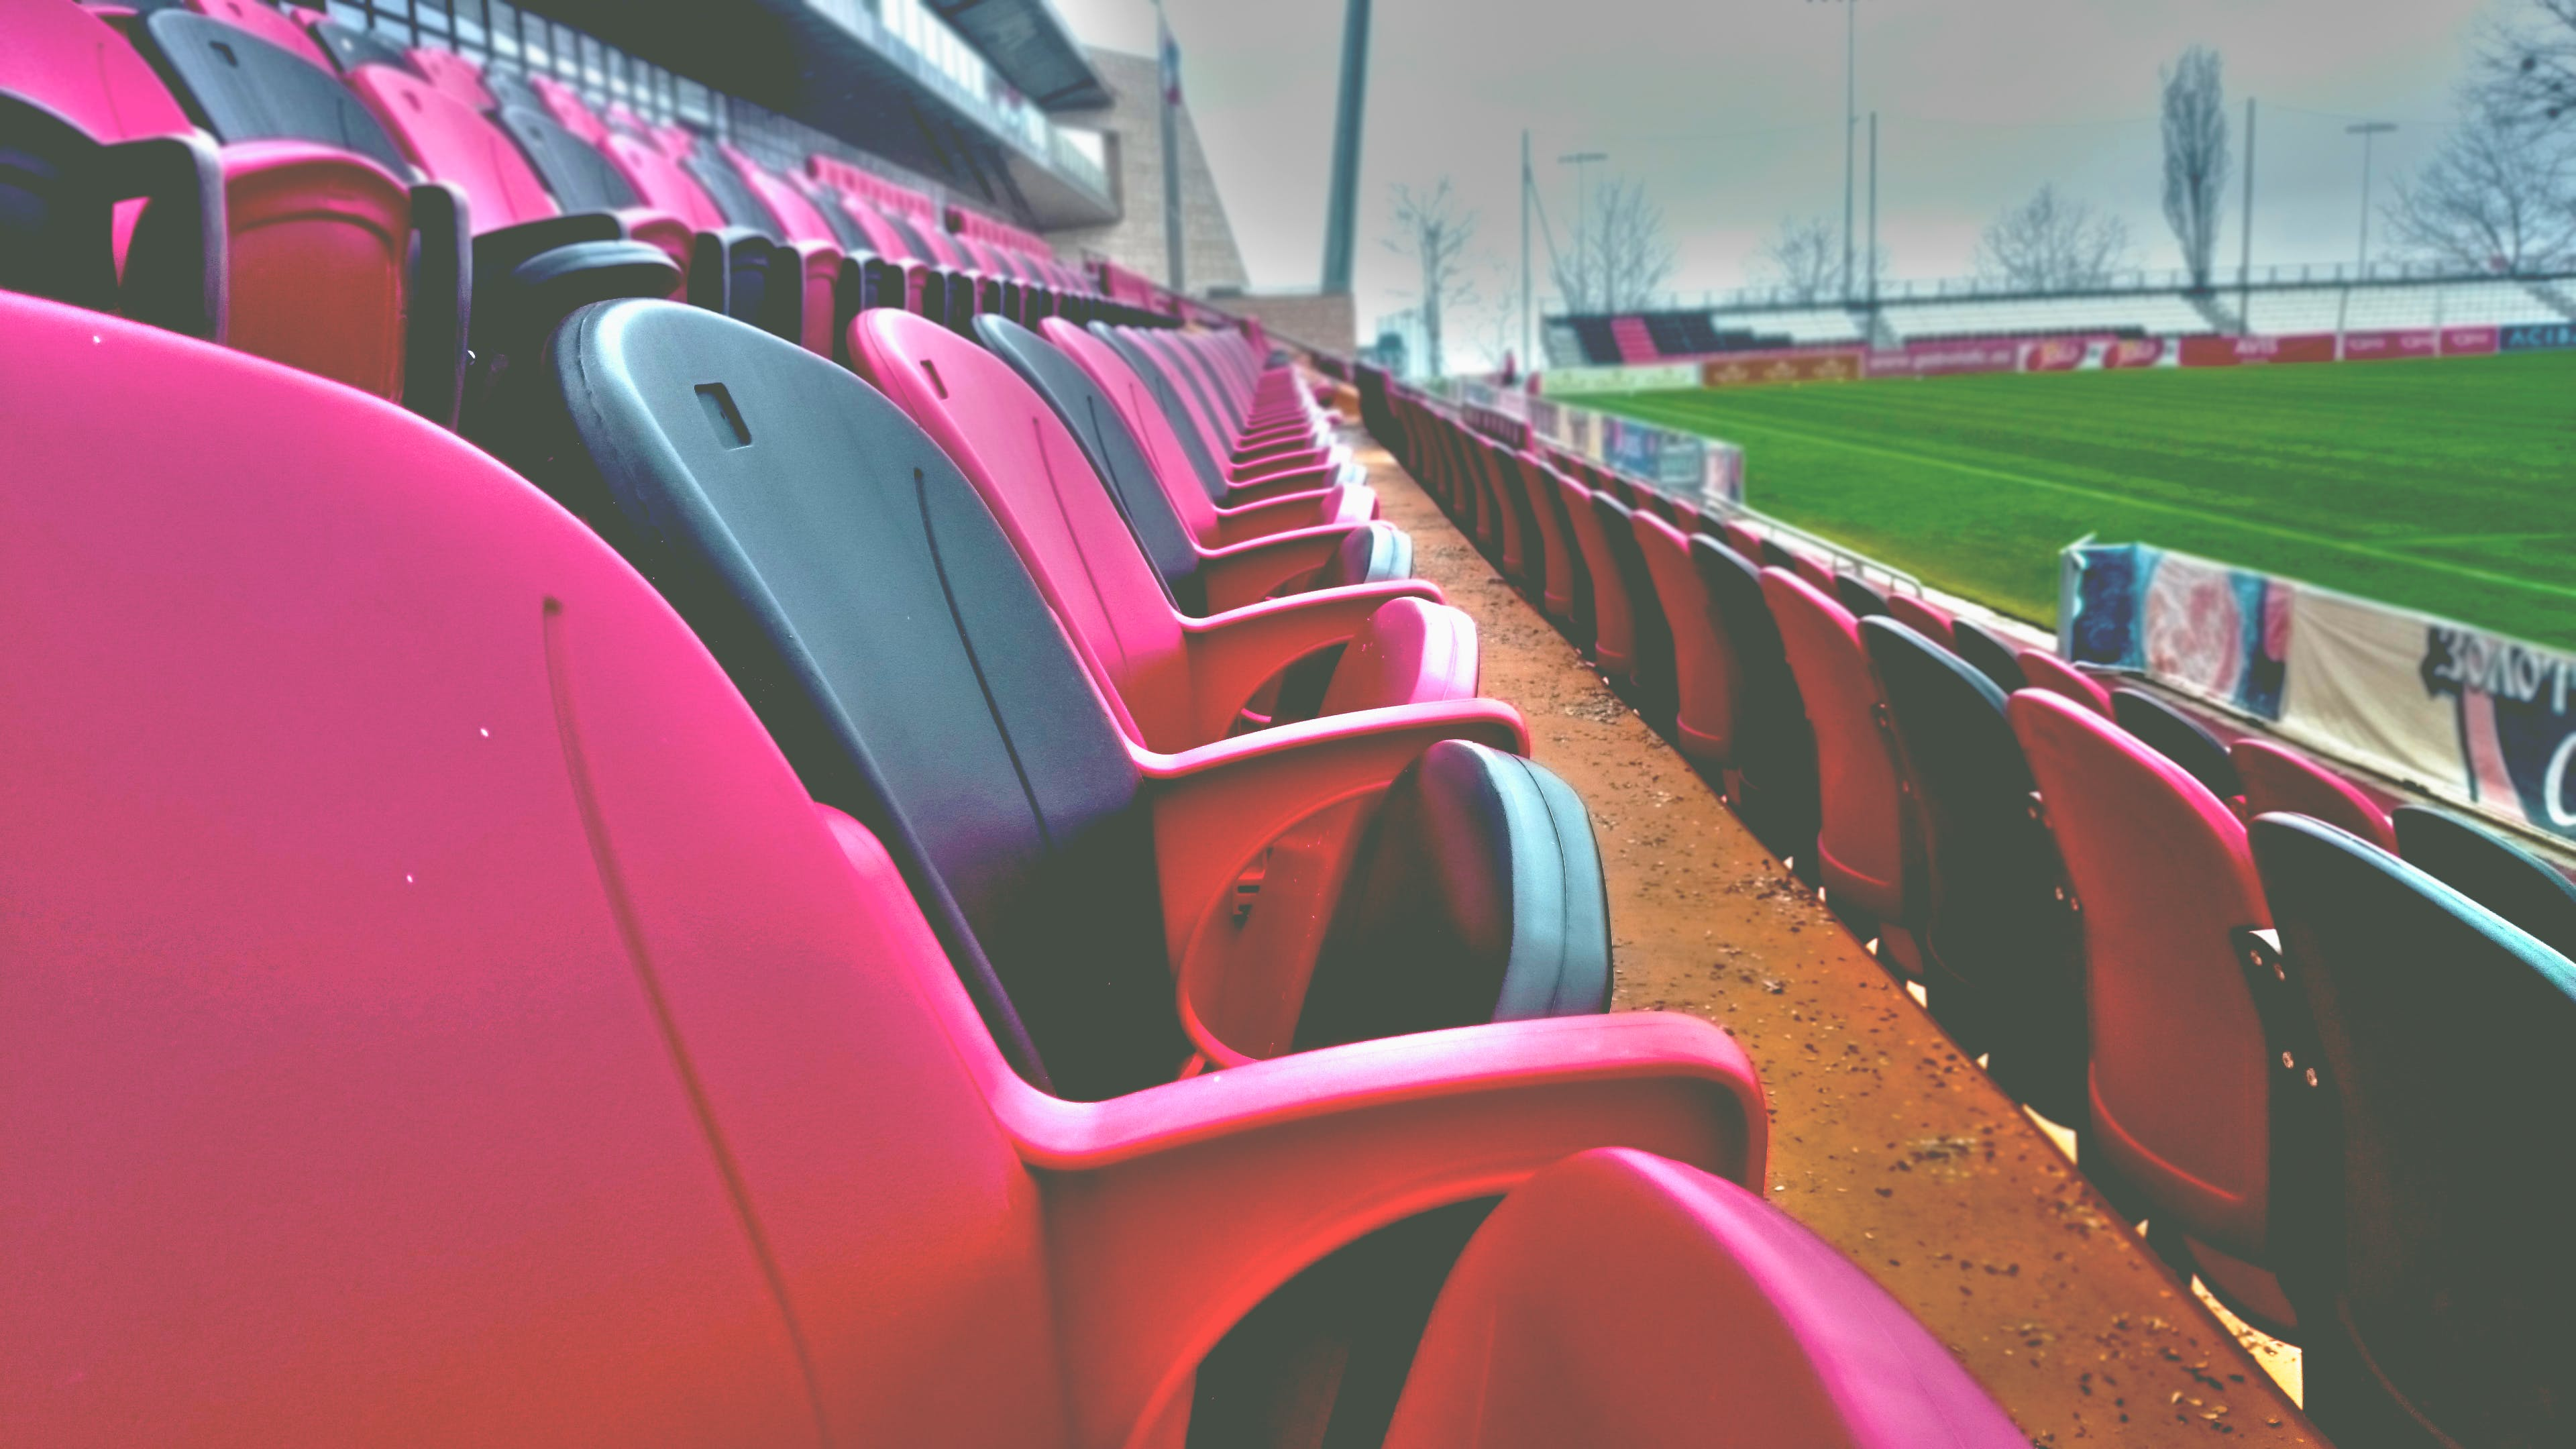 Empty Sports Stadium Seats during Day